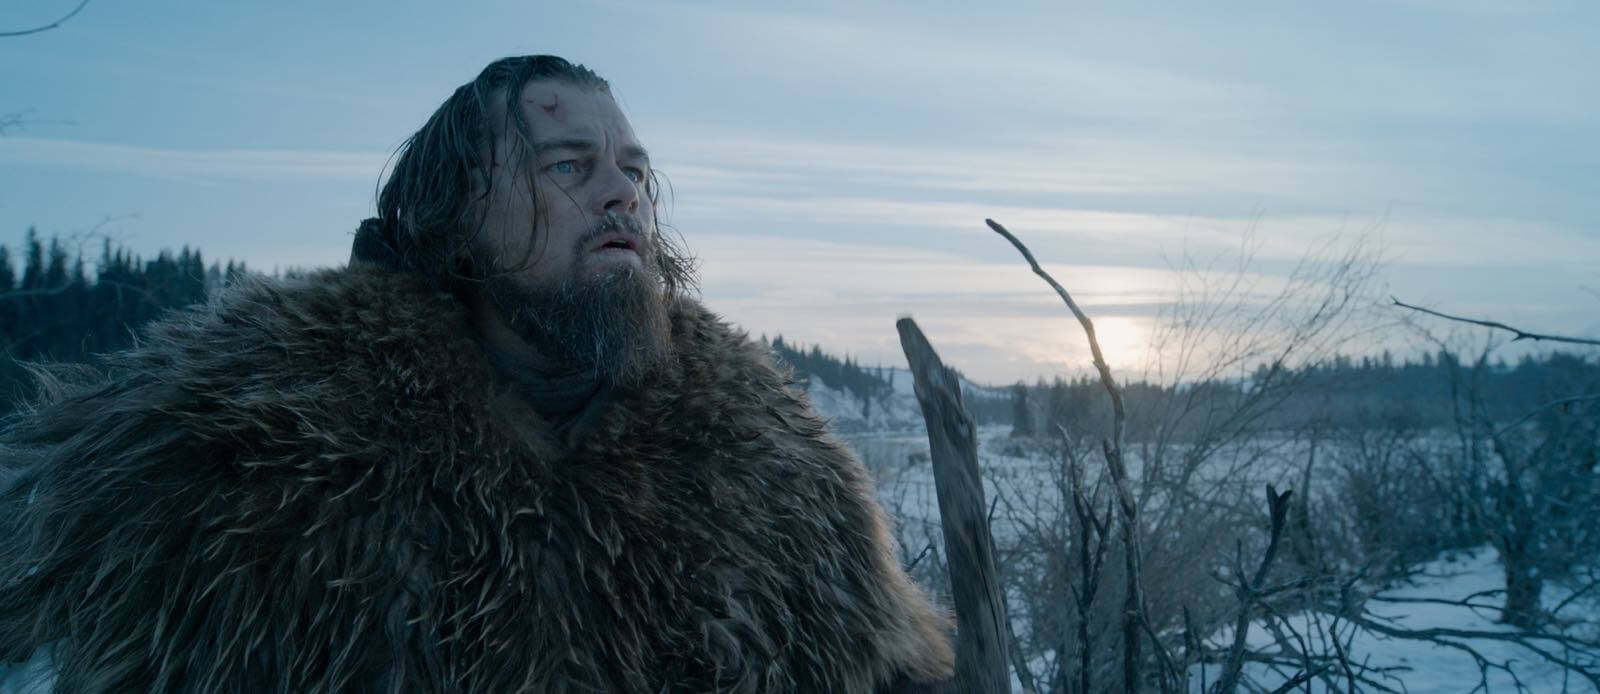 Film Lighting Techniques - 3-Point Lighting - The Revenant